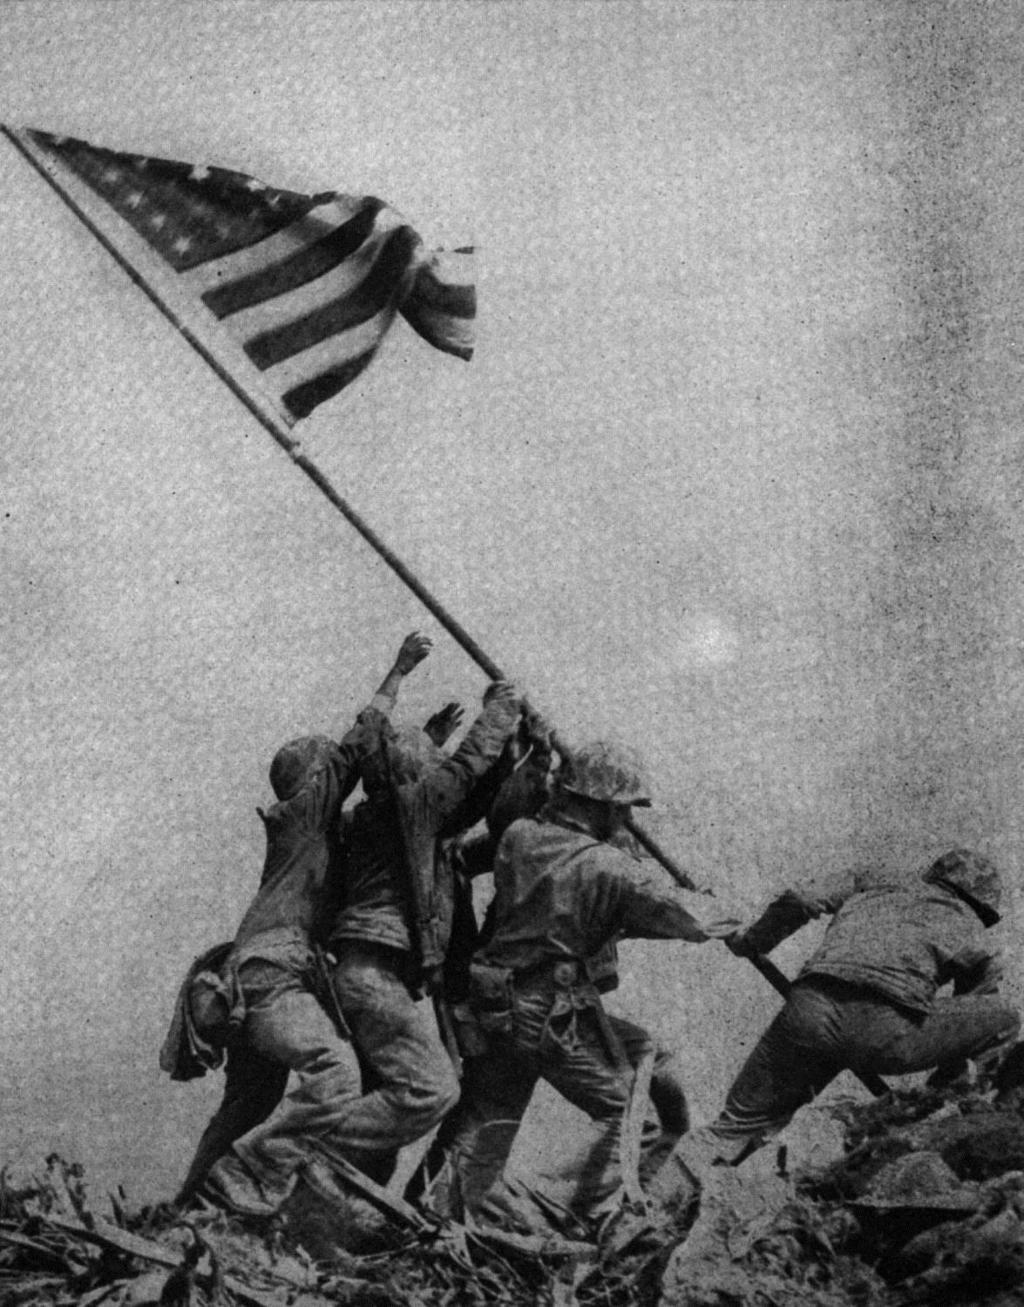 Iwo Jima The Island of Iwo Jima was critical to the U.S. as a base. From Iwo Jima the Allies could launch bombing raids against Japan.